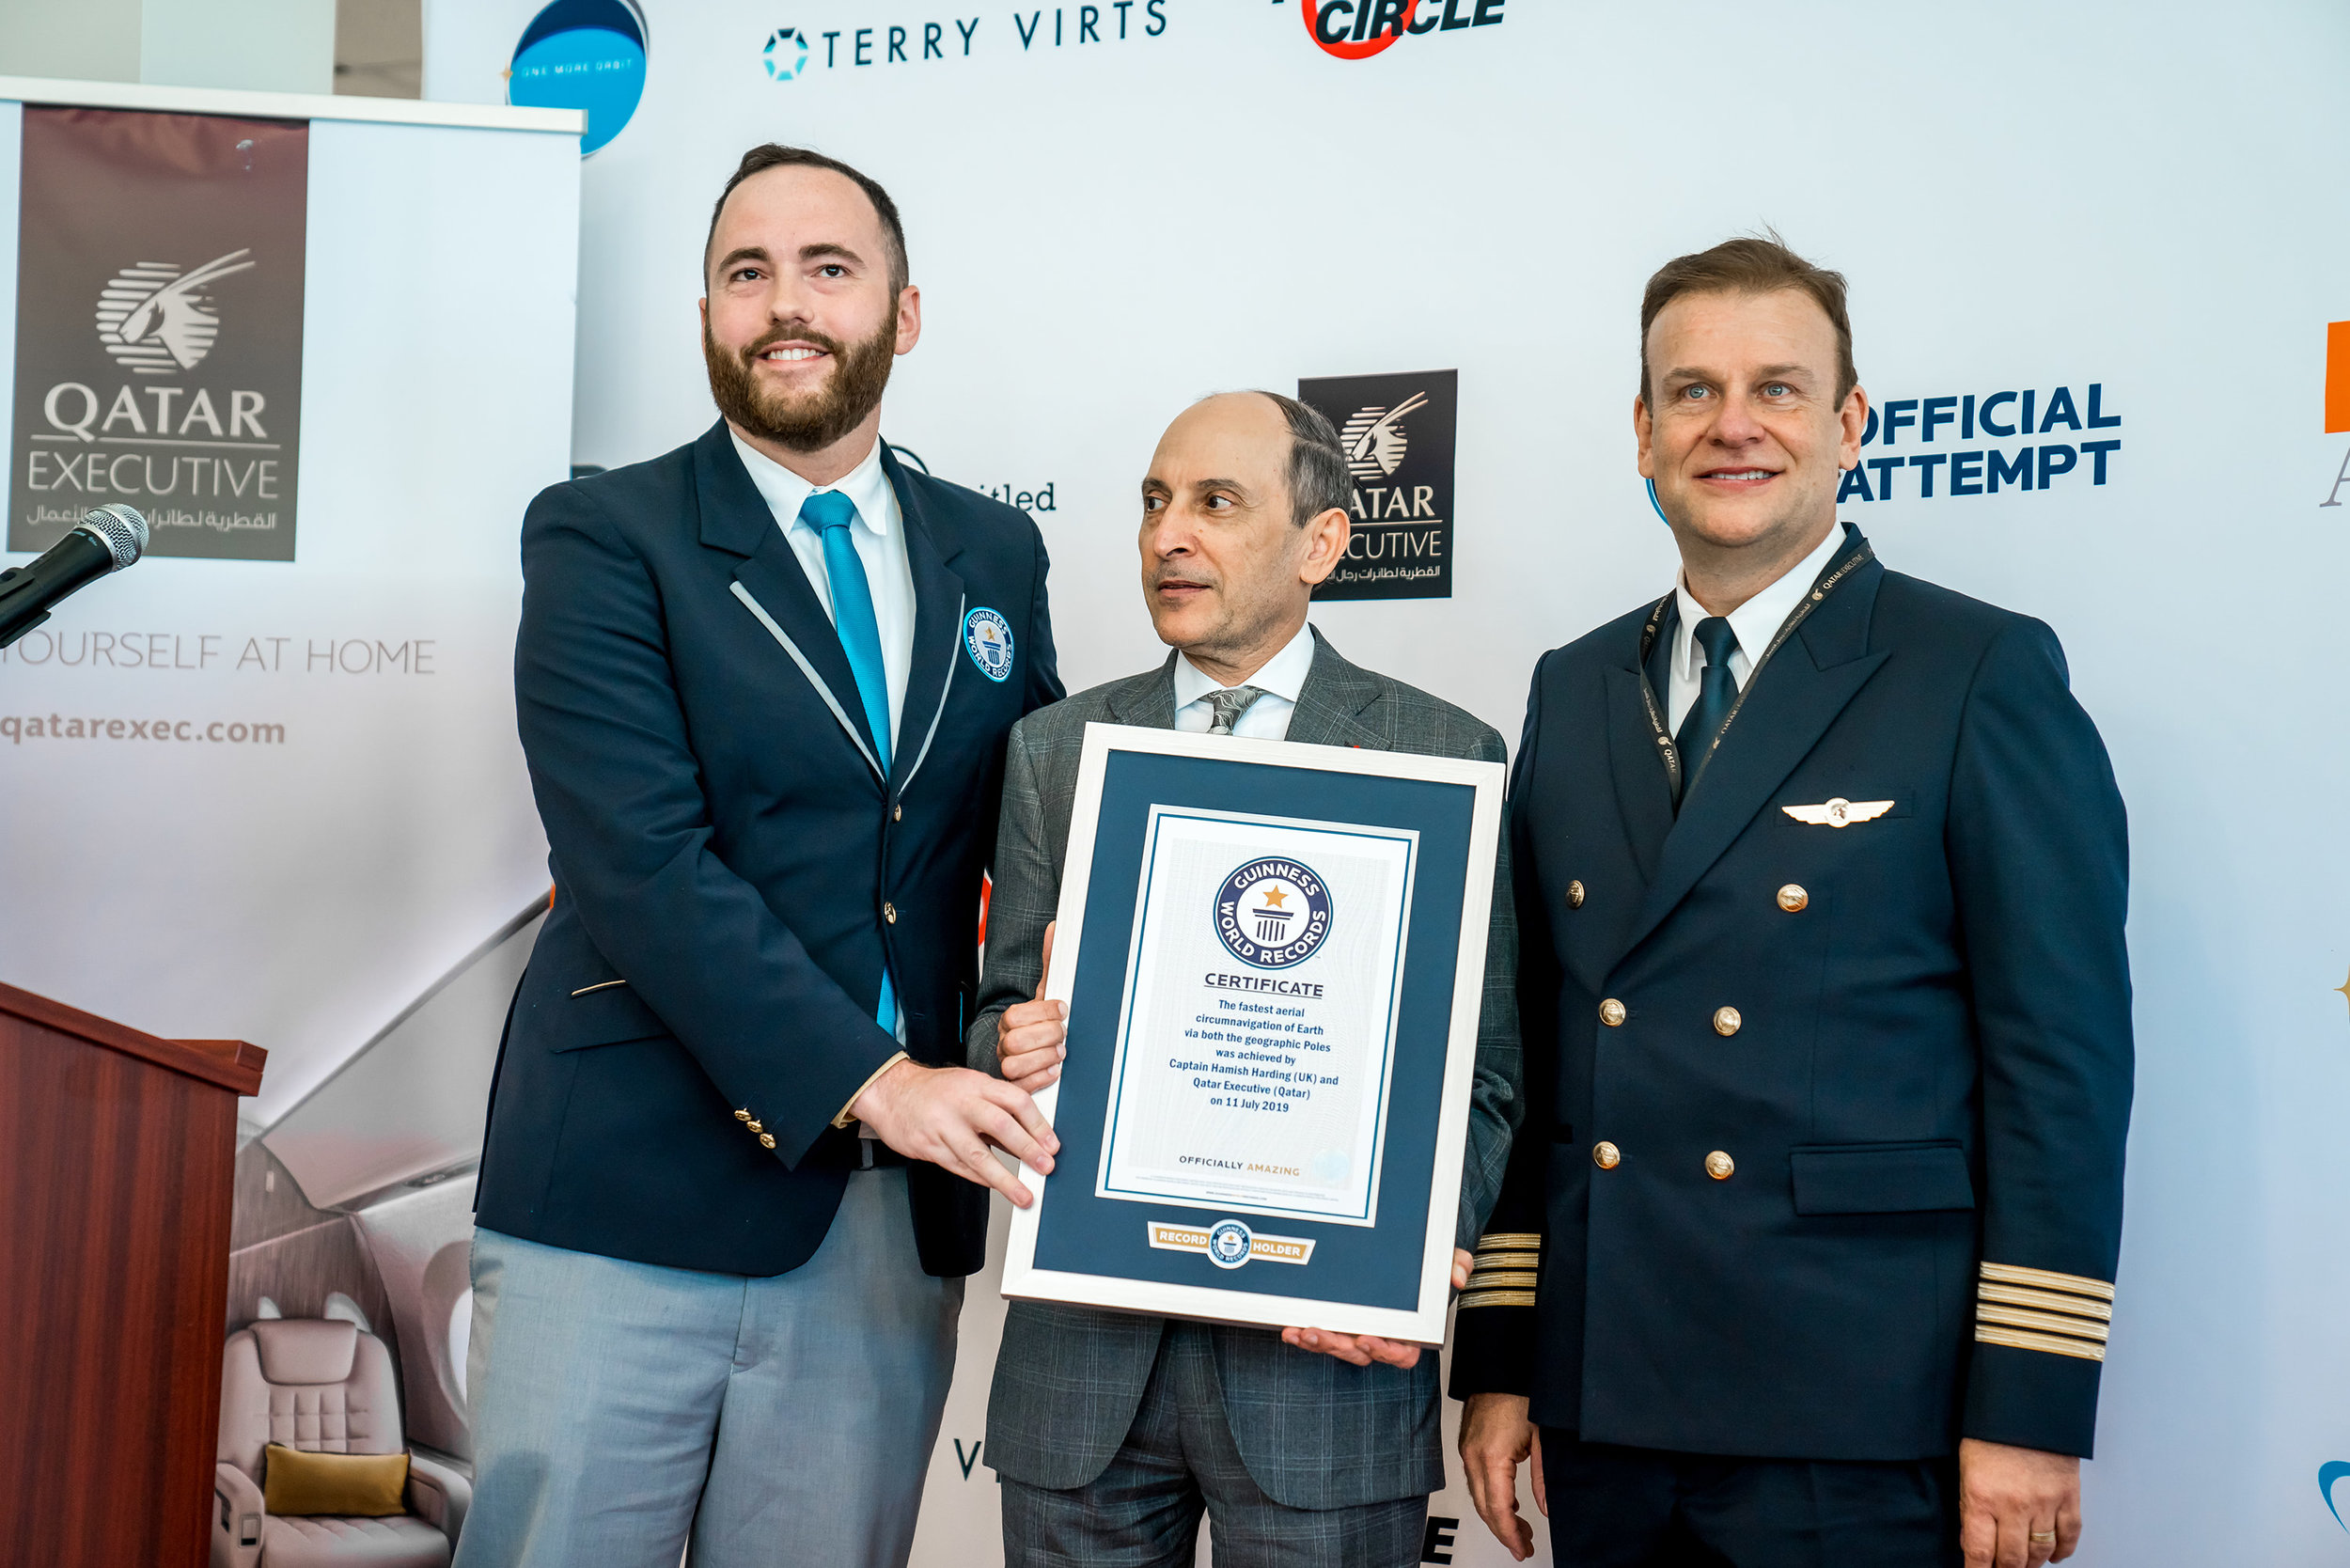 GWR certificate presentation to Qatar Executive Ettore Rodano and Capt Hamish Harding